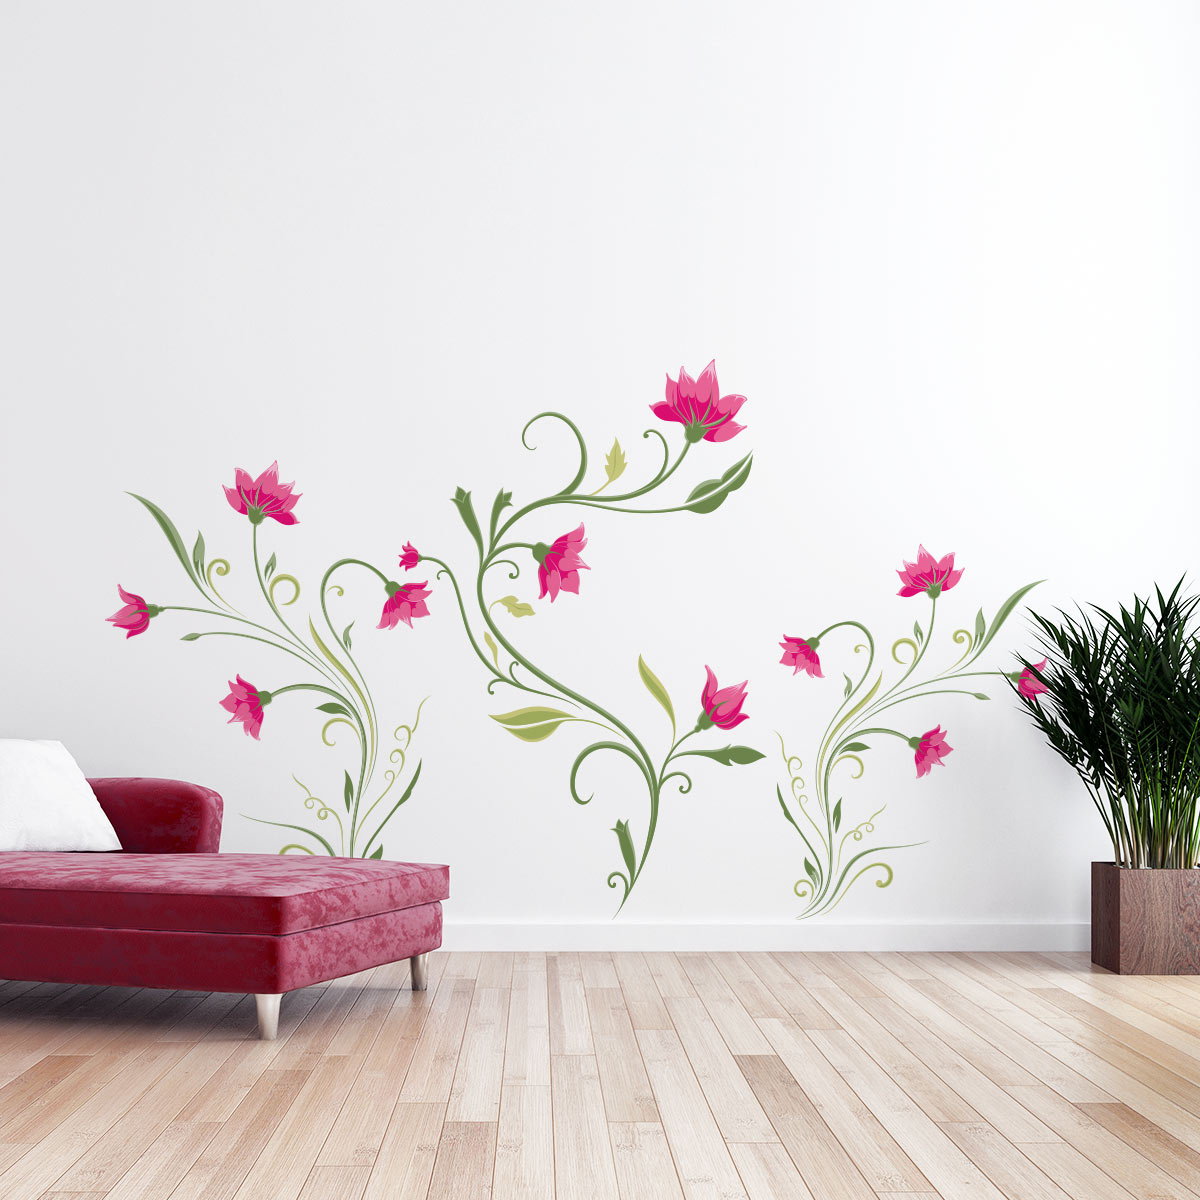 Wall Decal Flower Pink Climbing Plants Wall Decals Wall Decal Nature Flowers Ambiance Sticker